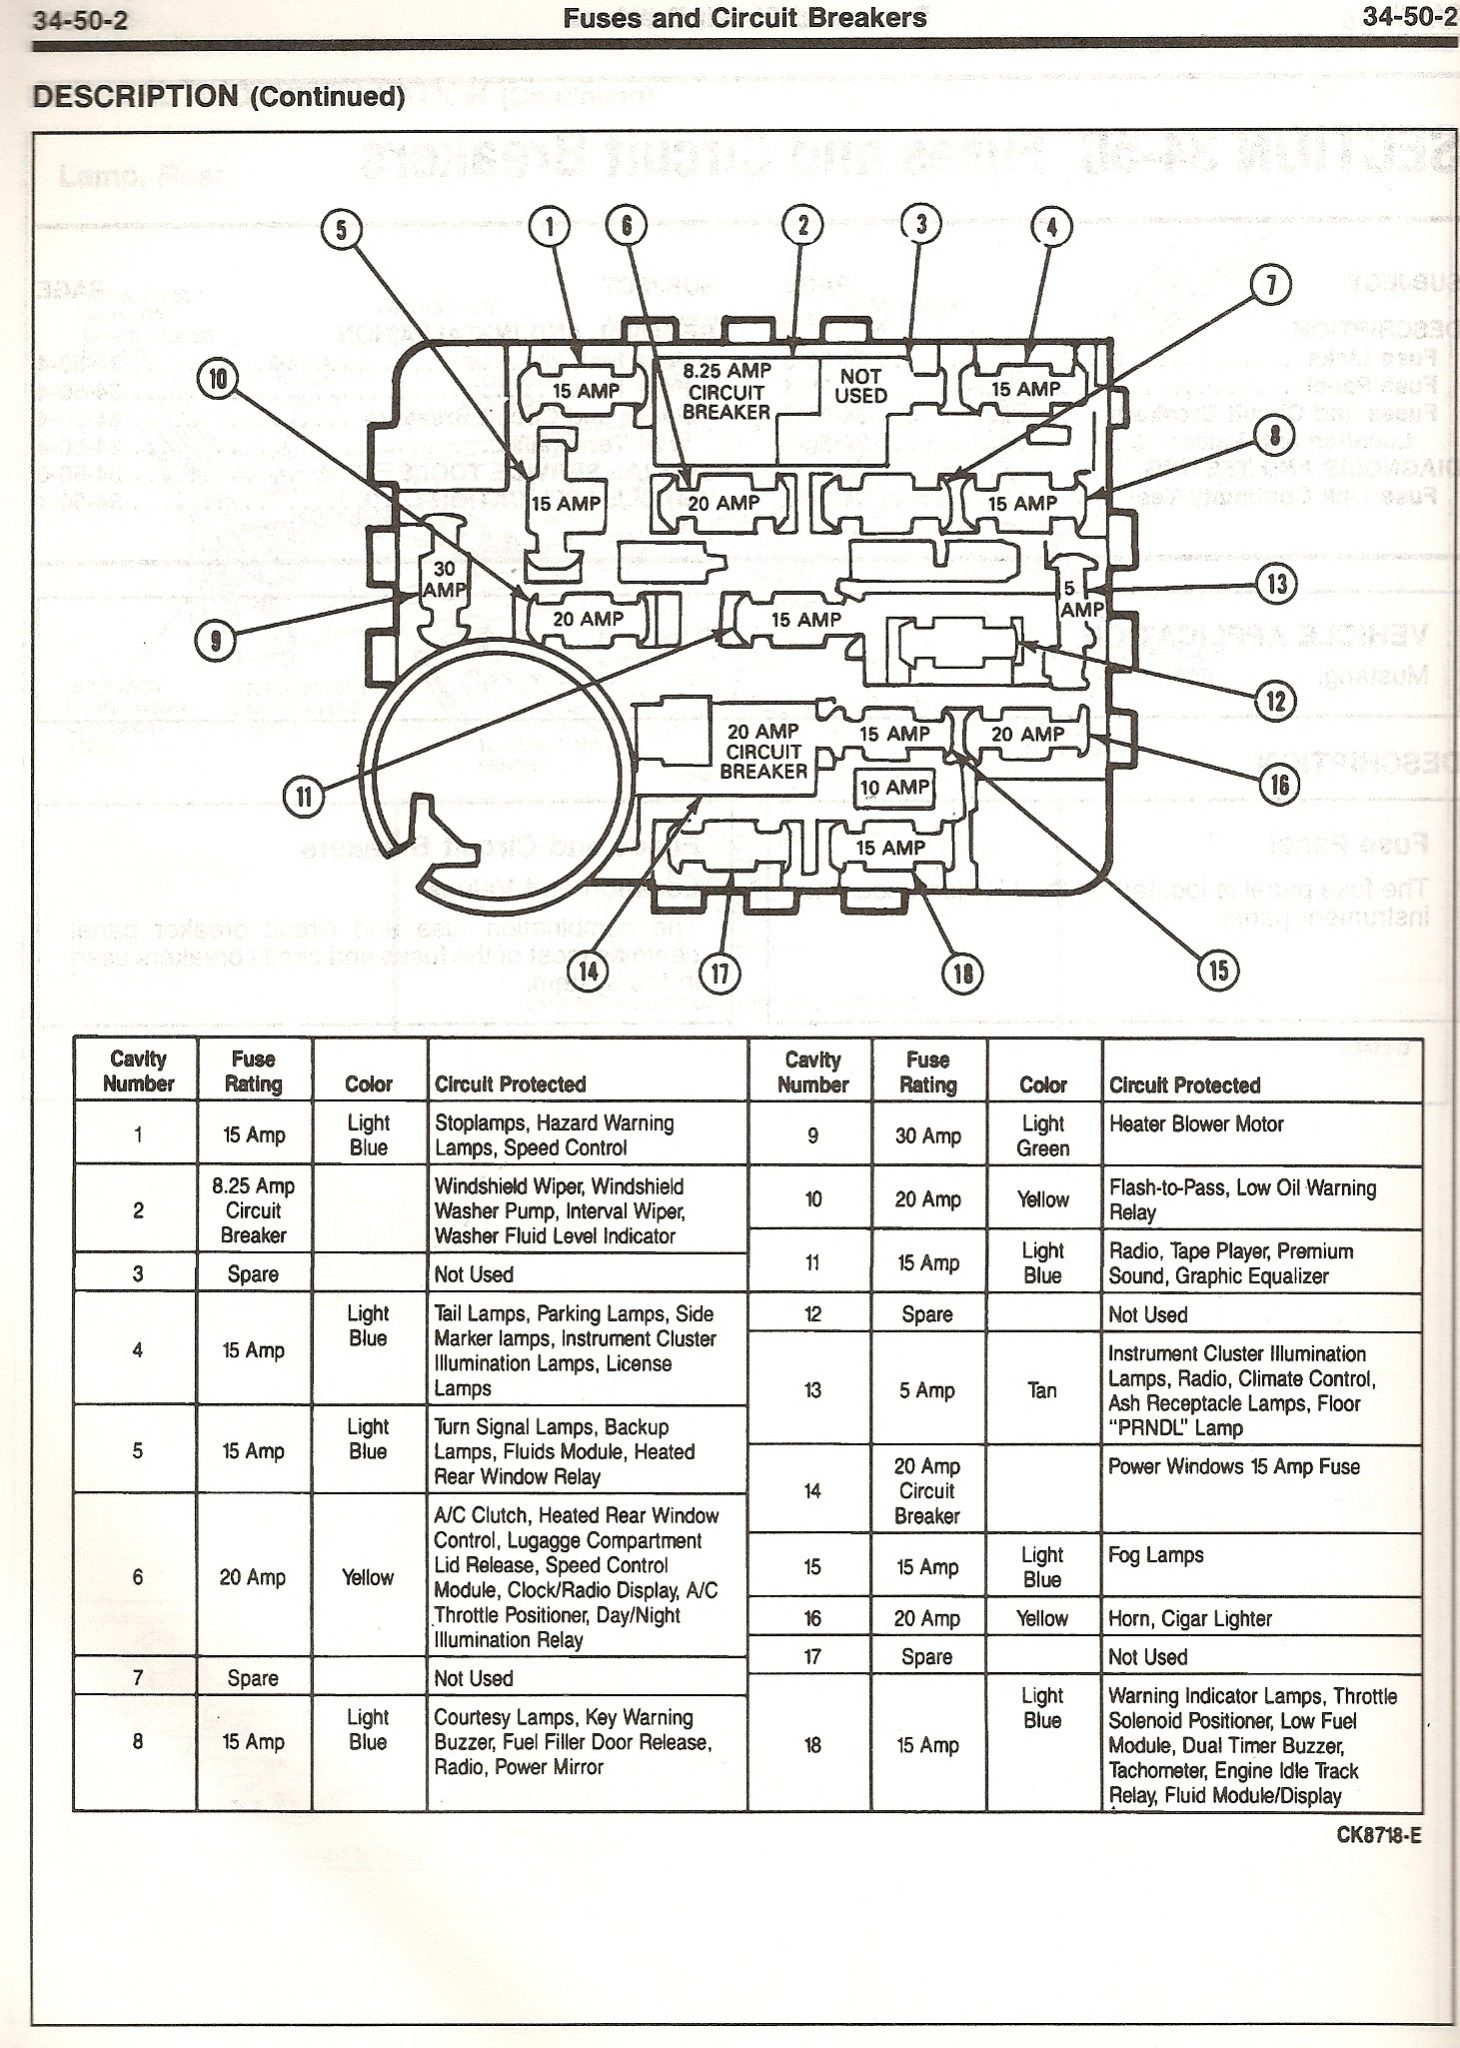 1990 Jeep Fuse Box Diagram | Wiring Diagram  Jeep Wrangler Fuse Box on